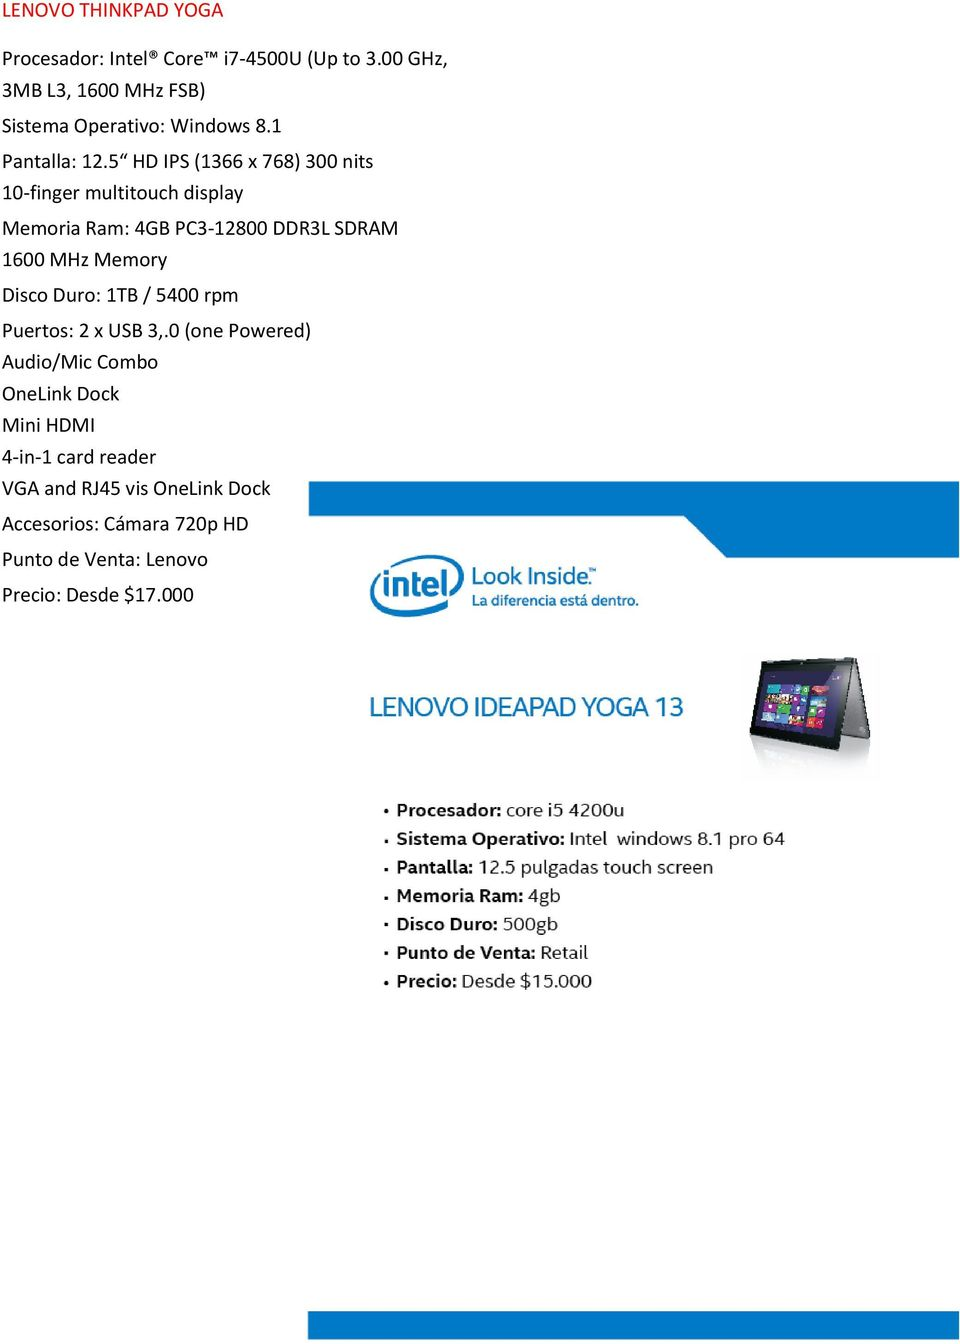 5 HD IPS (1366 x 768) 300 nits 10-finger multitouch display Memoria Ram: 4GB PC3-12800 DDR3L SDRAM 1600 MHz Memory